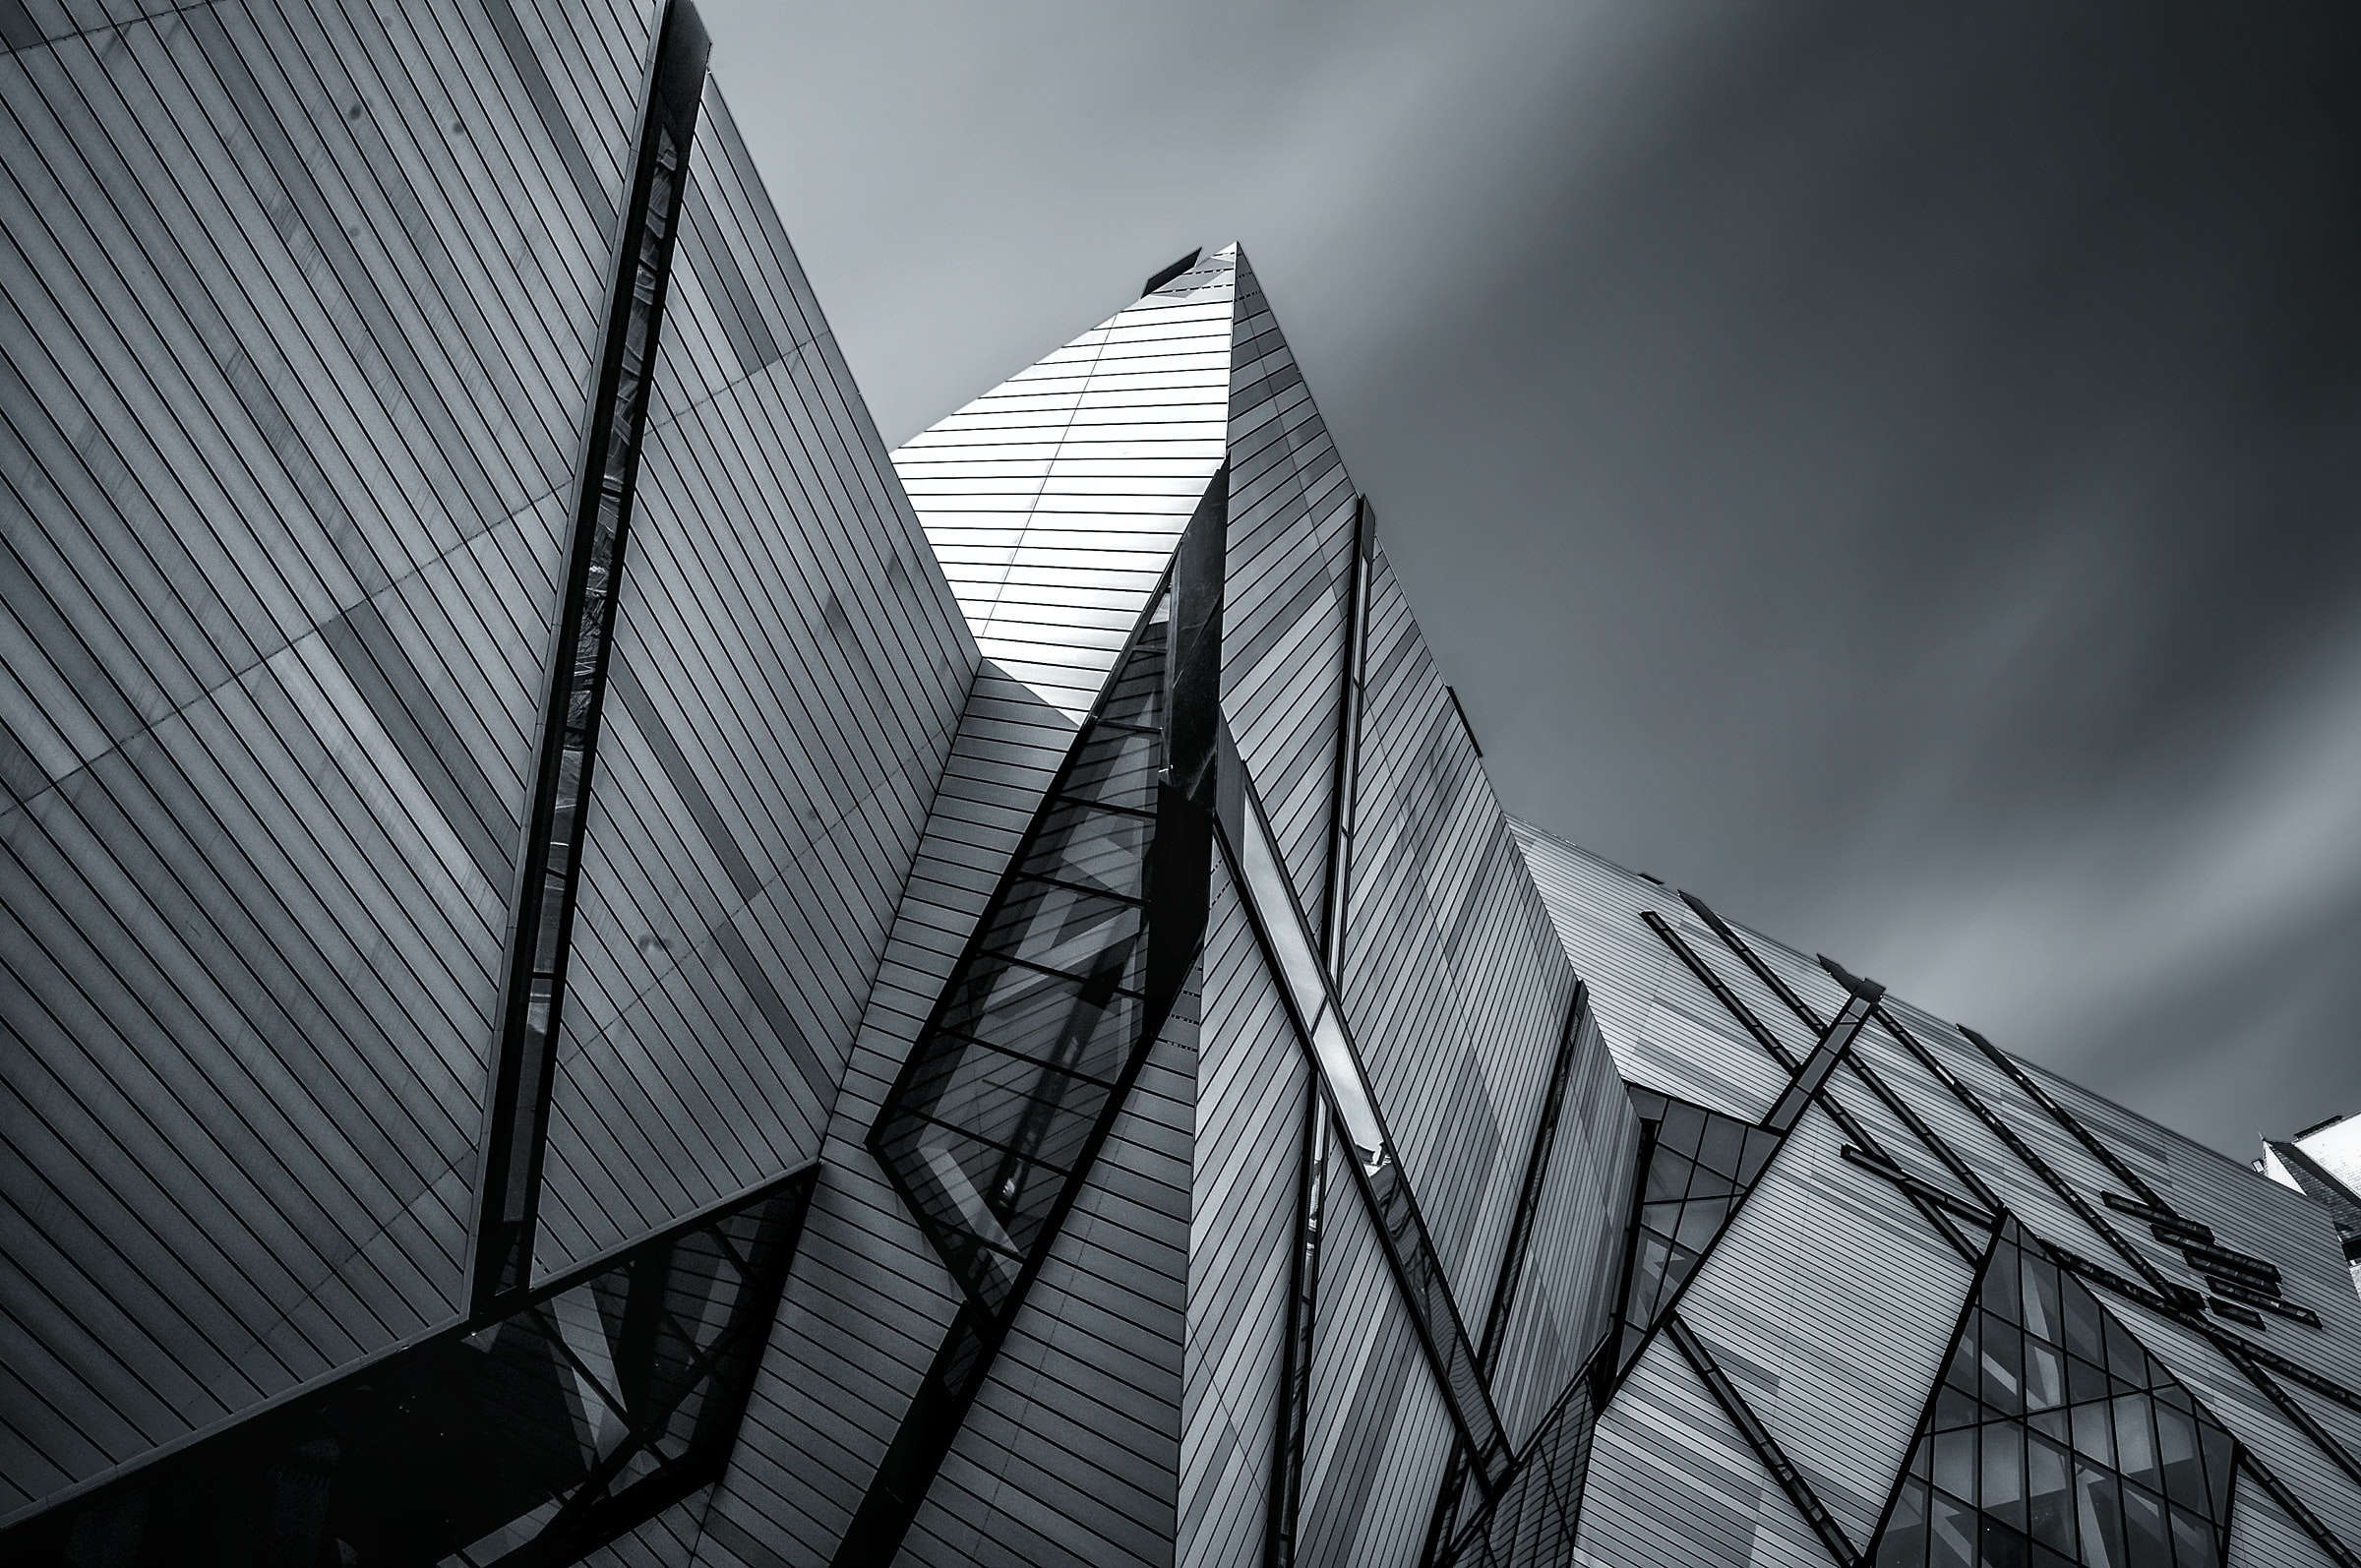 Royal Ontario Museum modern, futuristic architecture with gray sky and clouds